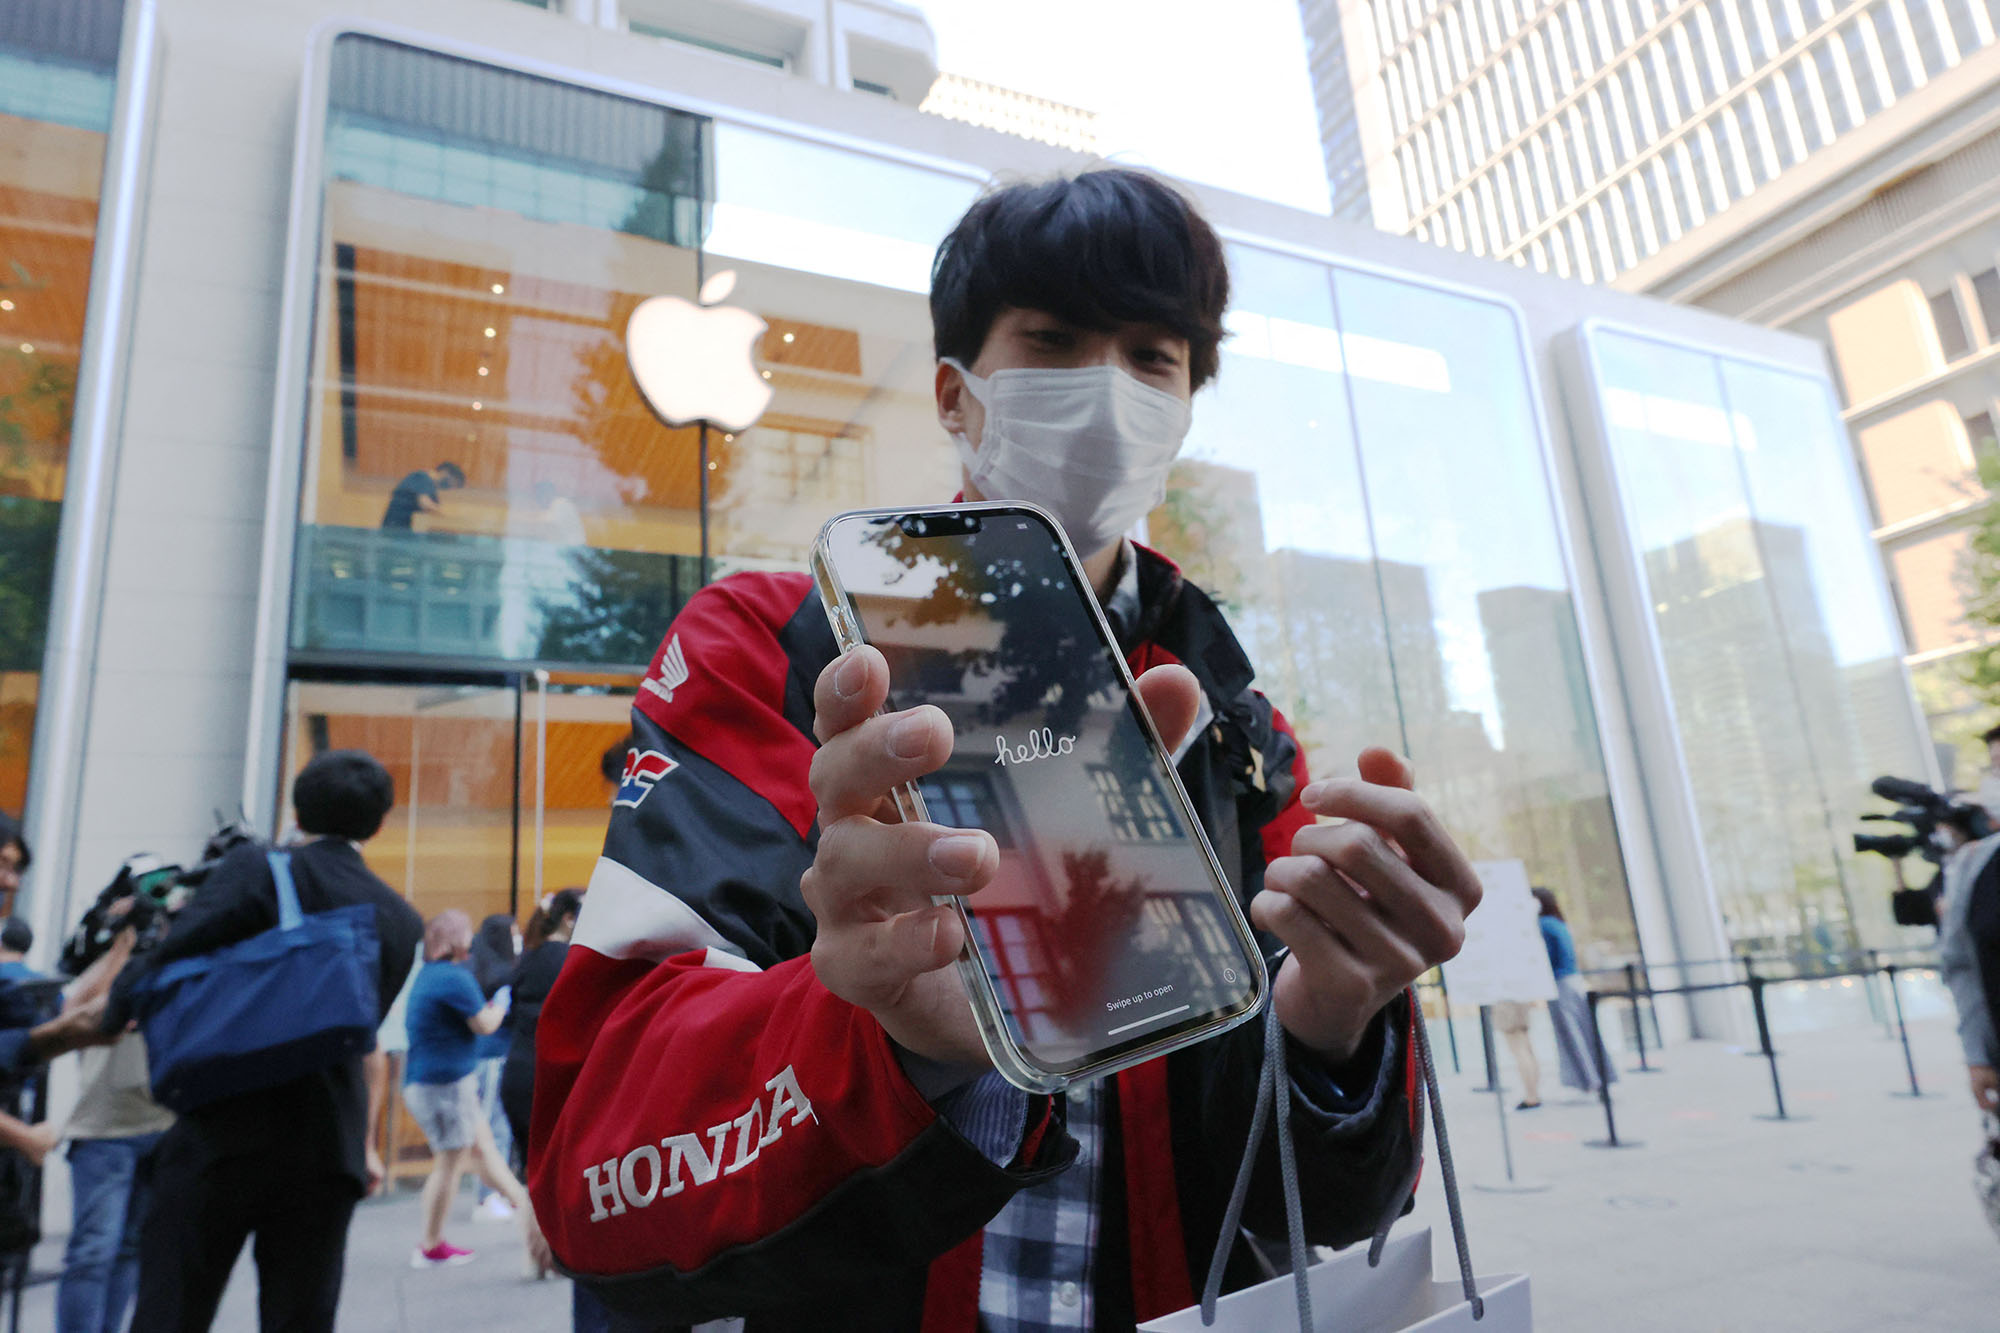 A man shows his new iPhone 13 ProMax in front of Apple Store in Marunouchi, Tokyo on Sep. 24, 2021. iPhone 13 series and others were launched on the same day. (Koji Ito, Europress/AFP)